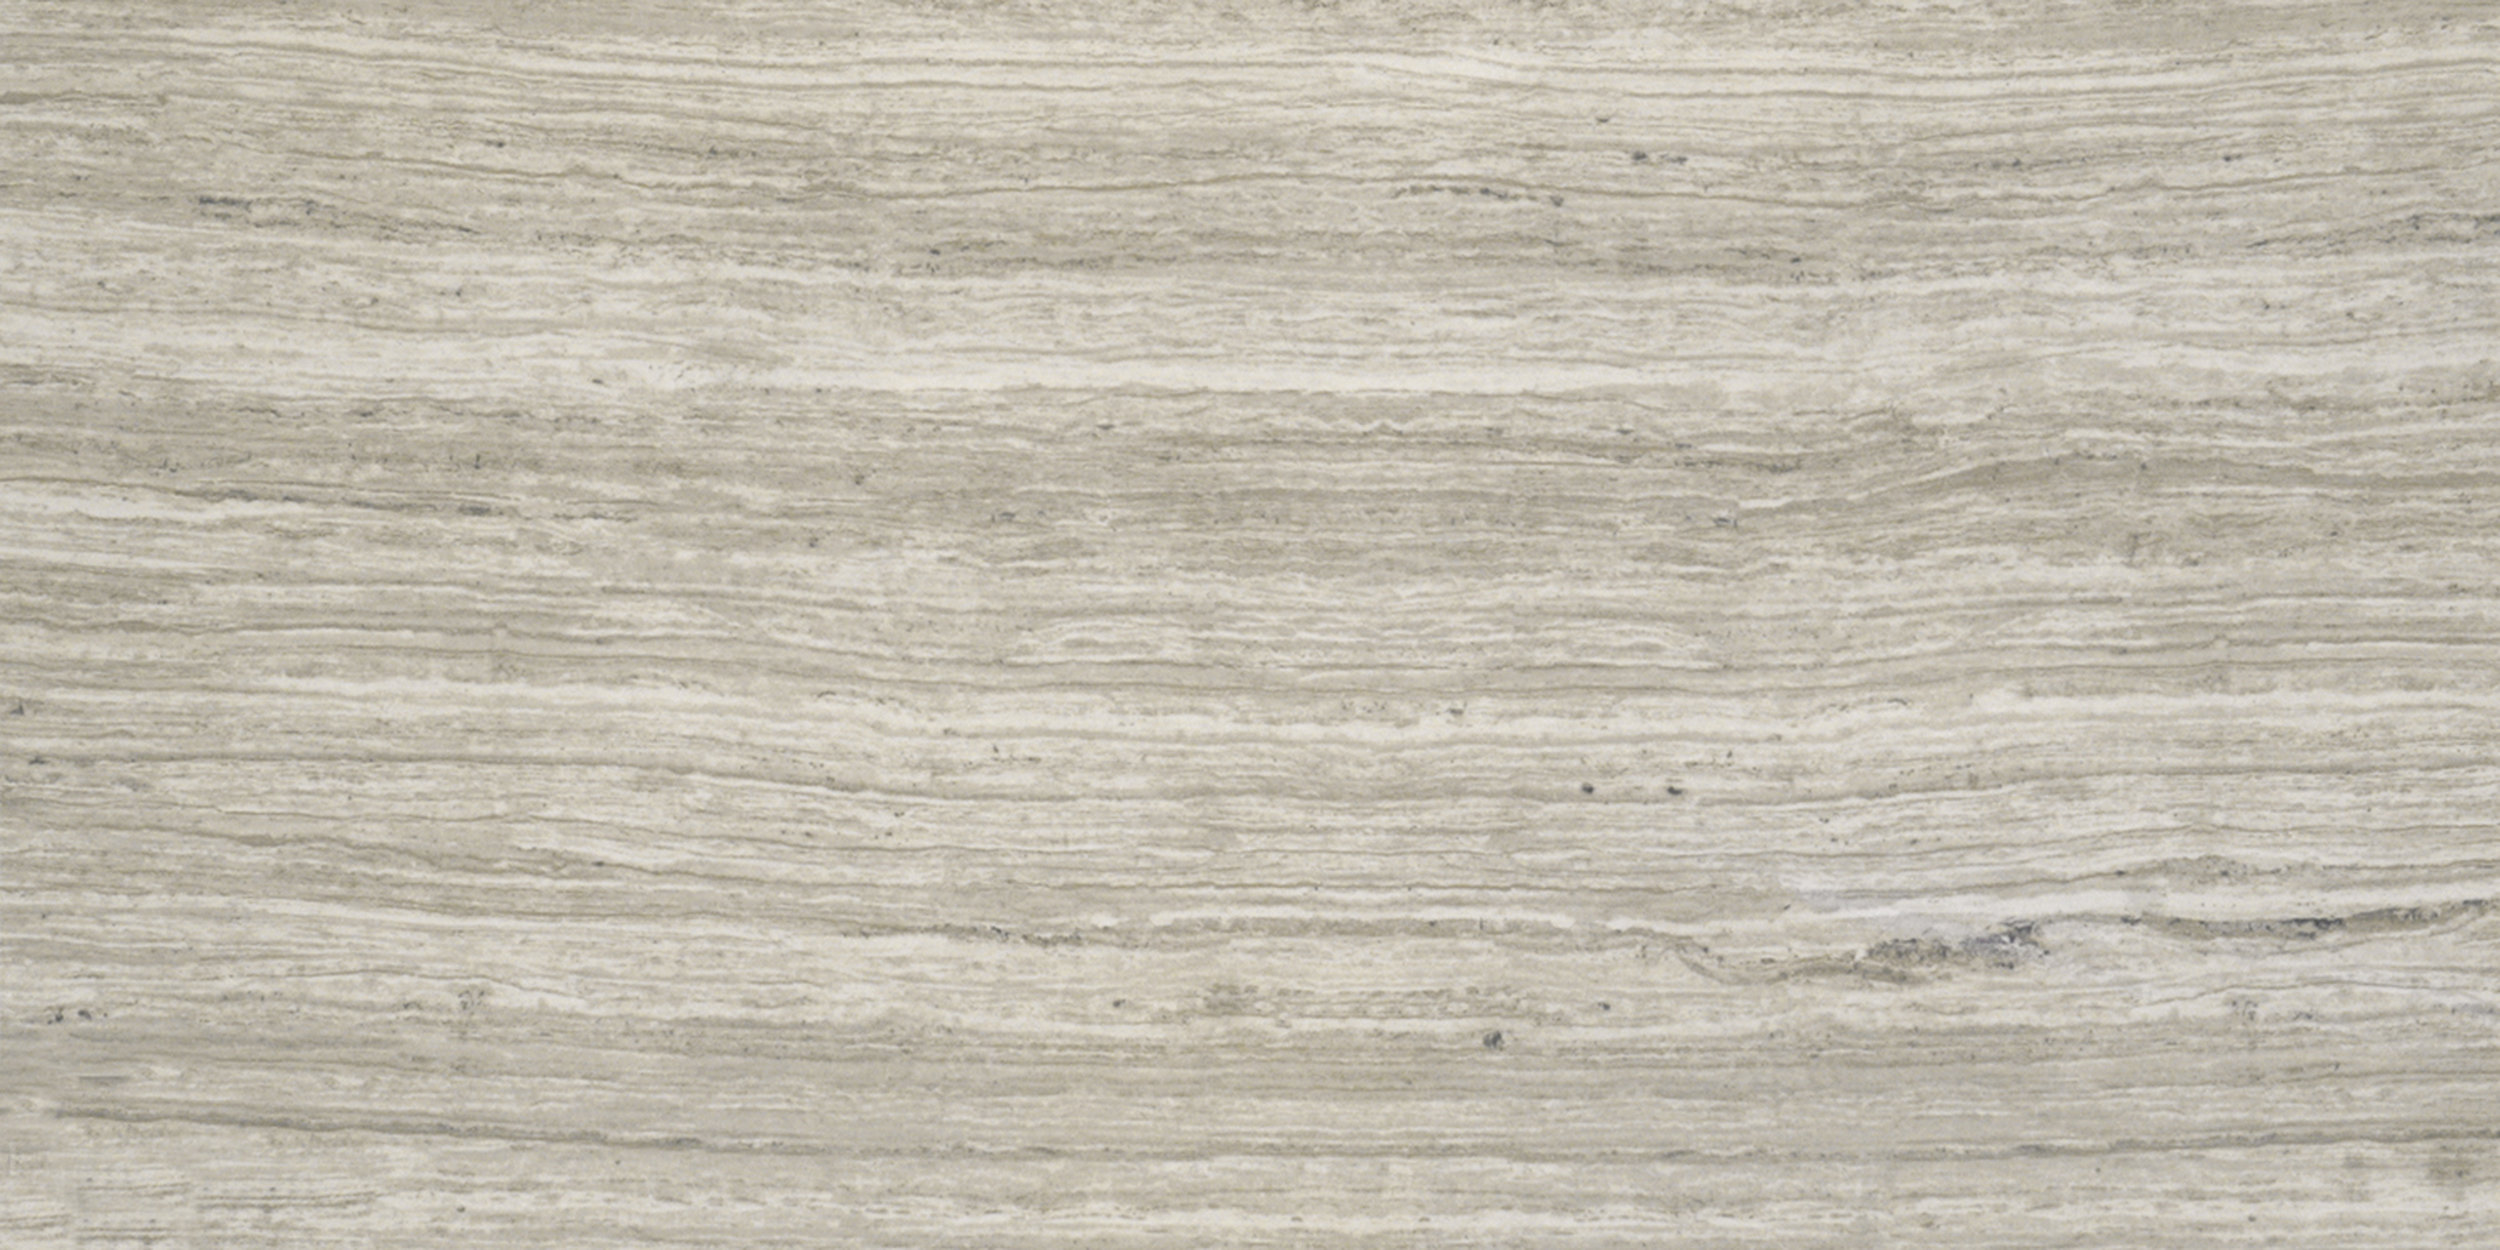 Travertine Silver  Polished | OV.ET.TRS.2448.PL  Matte | OV.ET.TRS.2448.PL